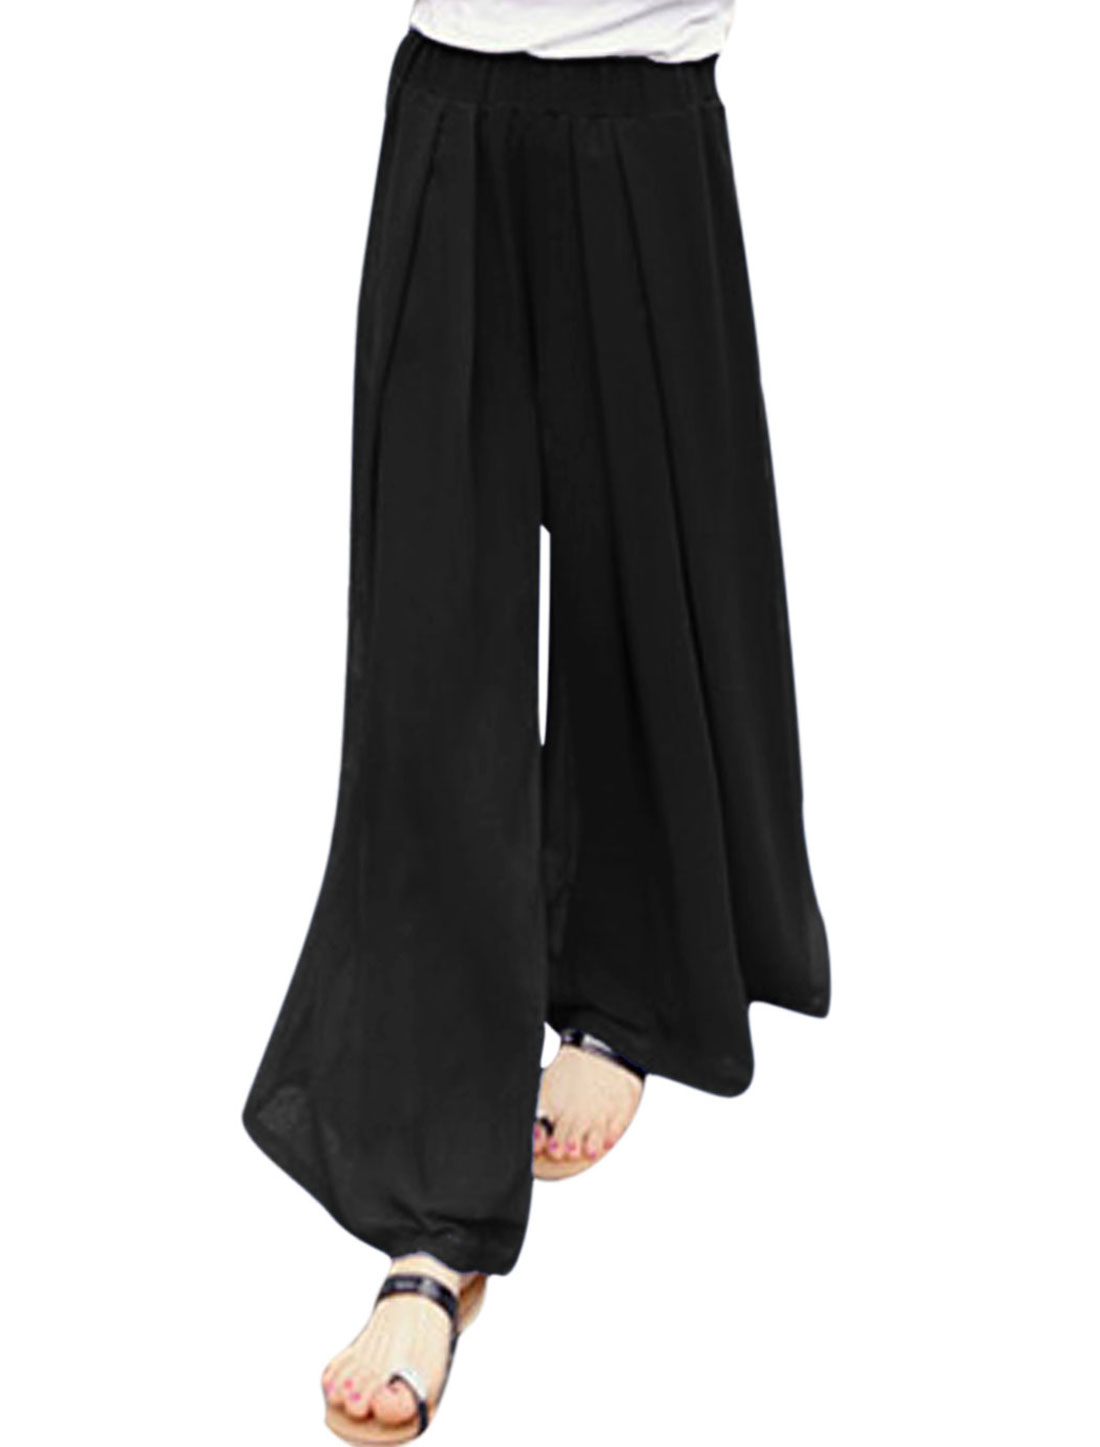 Ladies Mid Rise Elastic Waist Fully Lined Wide Leg Loose Pants Black XS